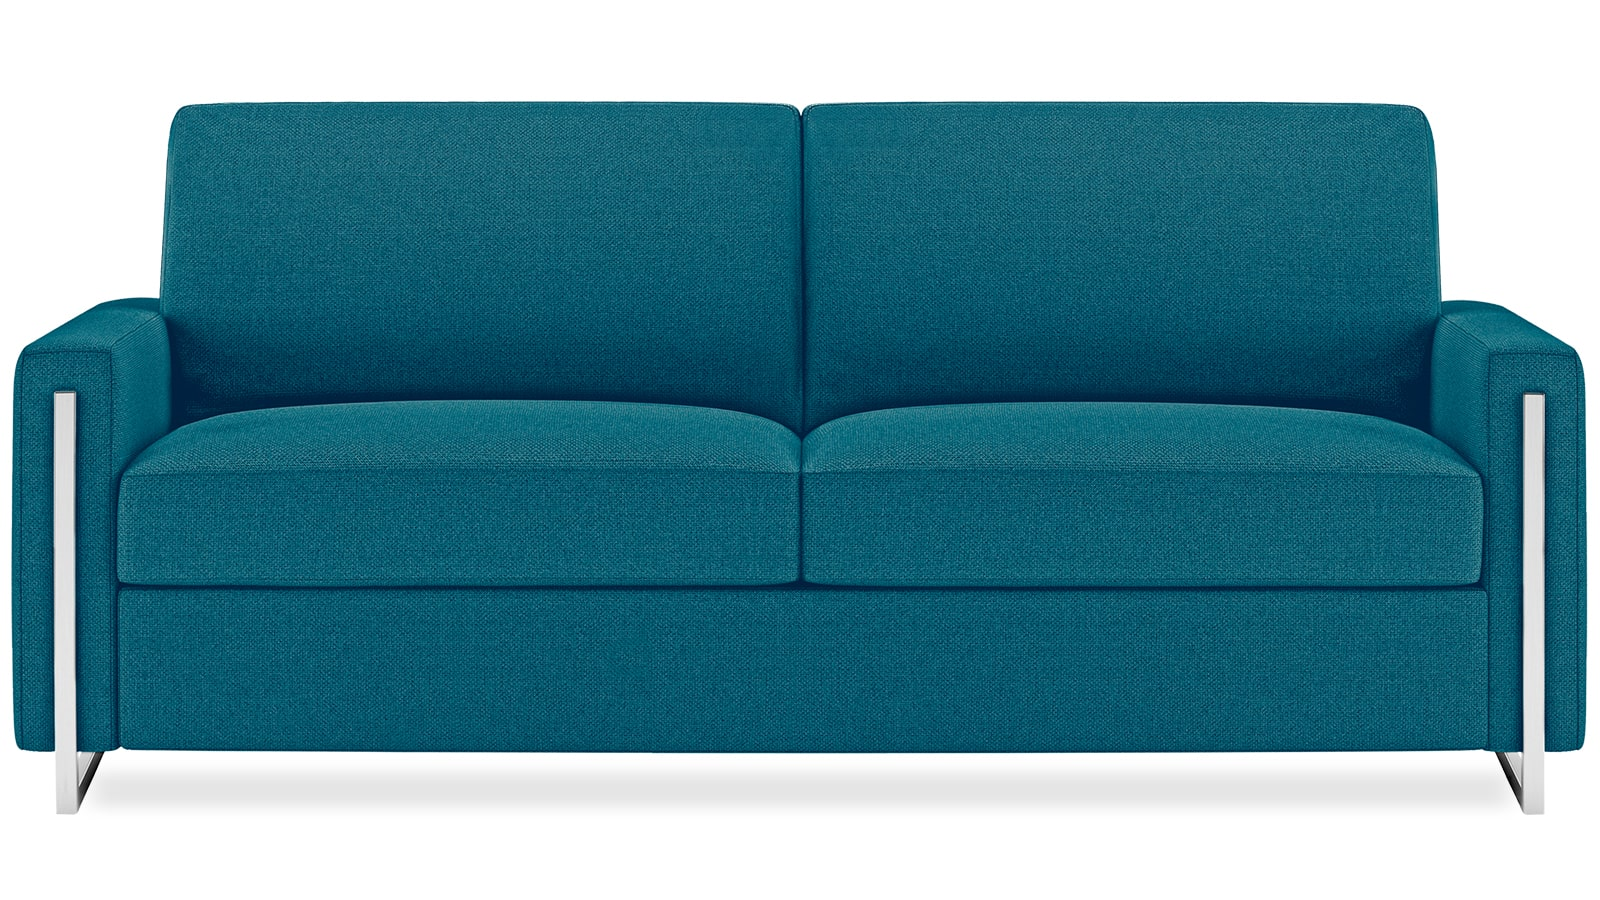 Perfect American Leather Sulley Sleeper Sofa